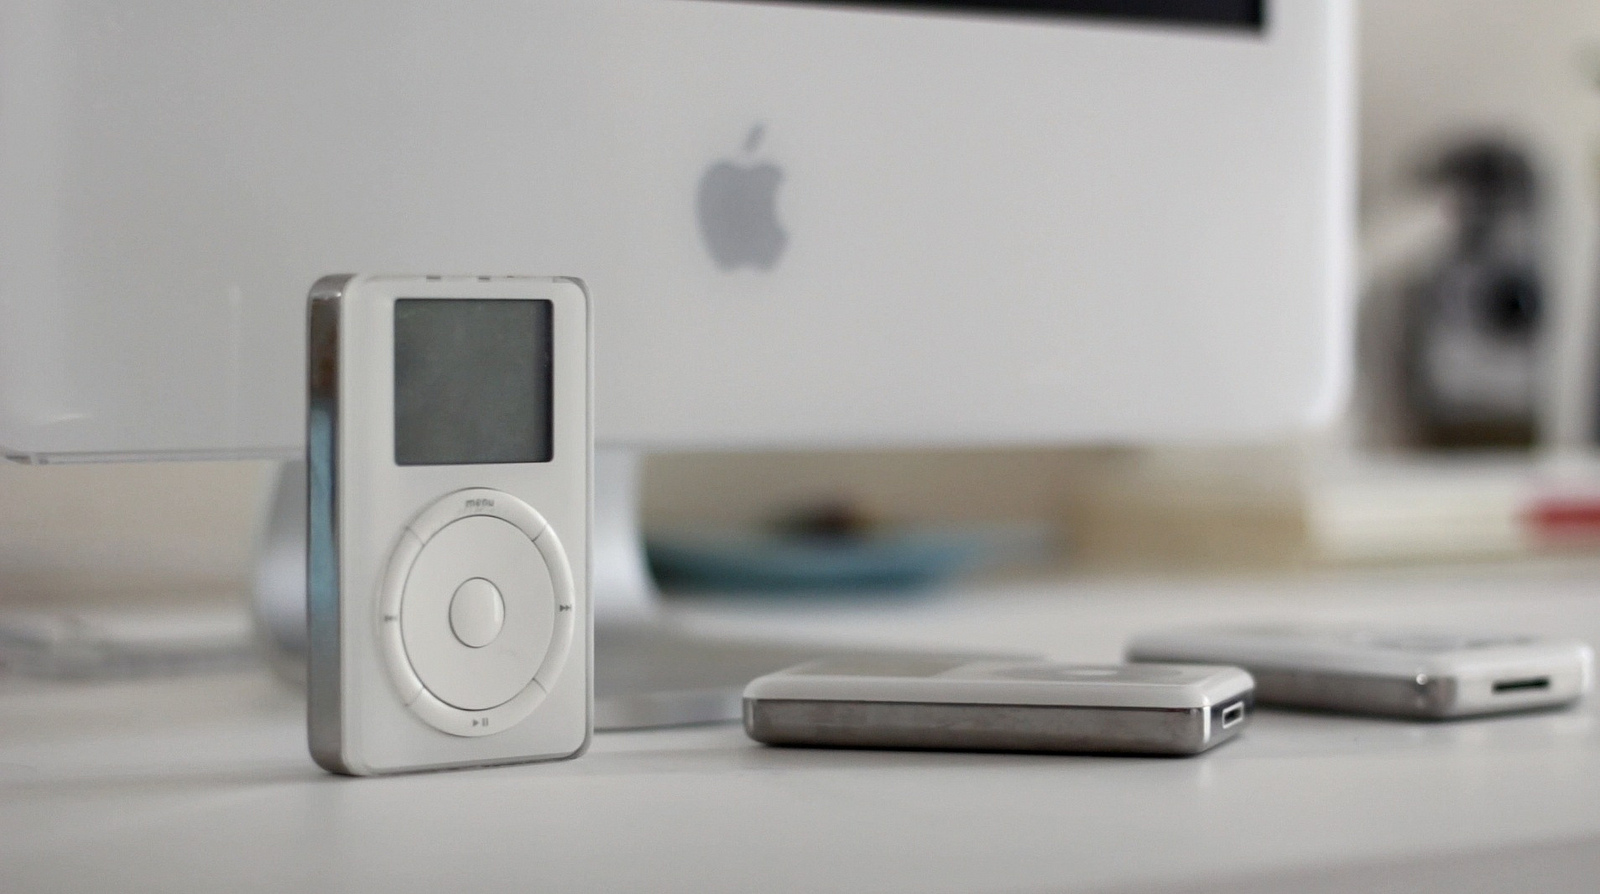 iPod 1st generation with G5 iMac computer